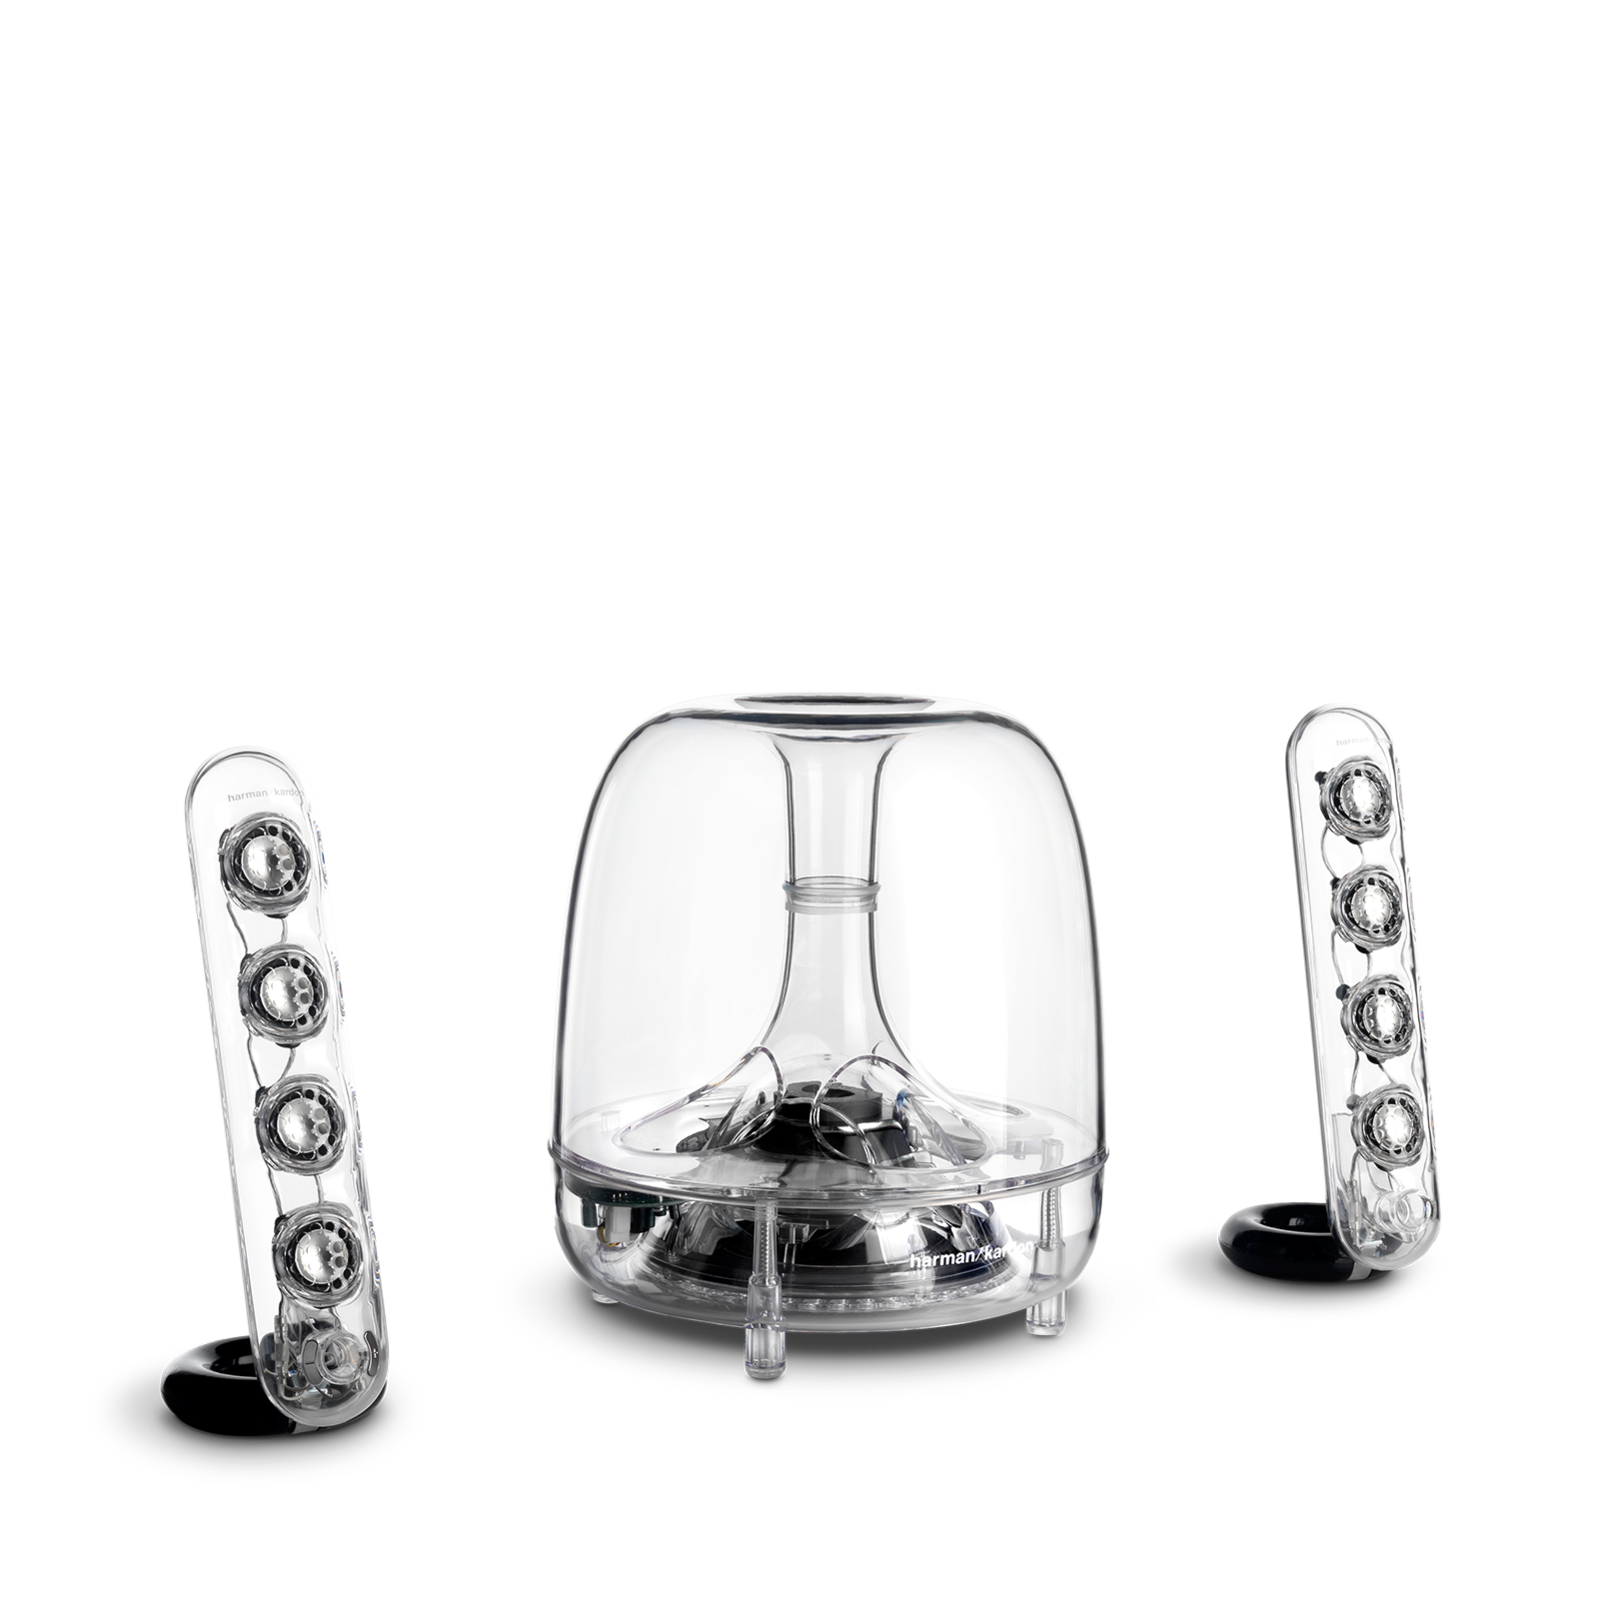 SoundSticks III - Clear - Three-piece, 2.1-channel multimedia sound system - Detailshot 4